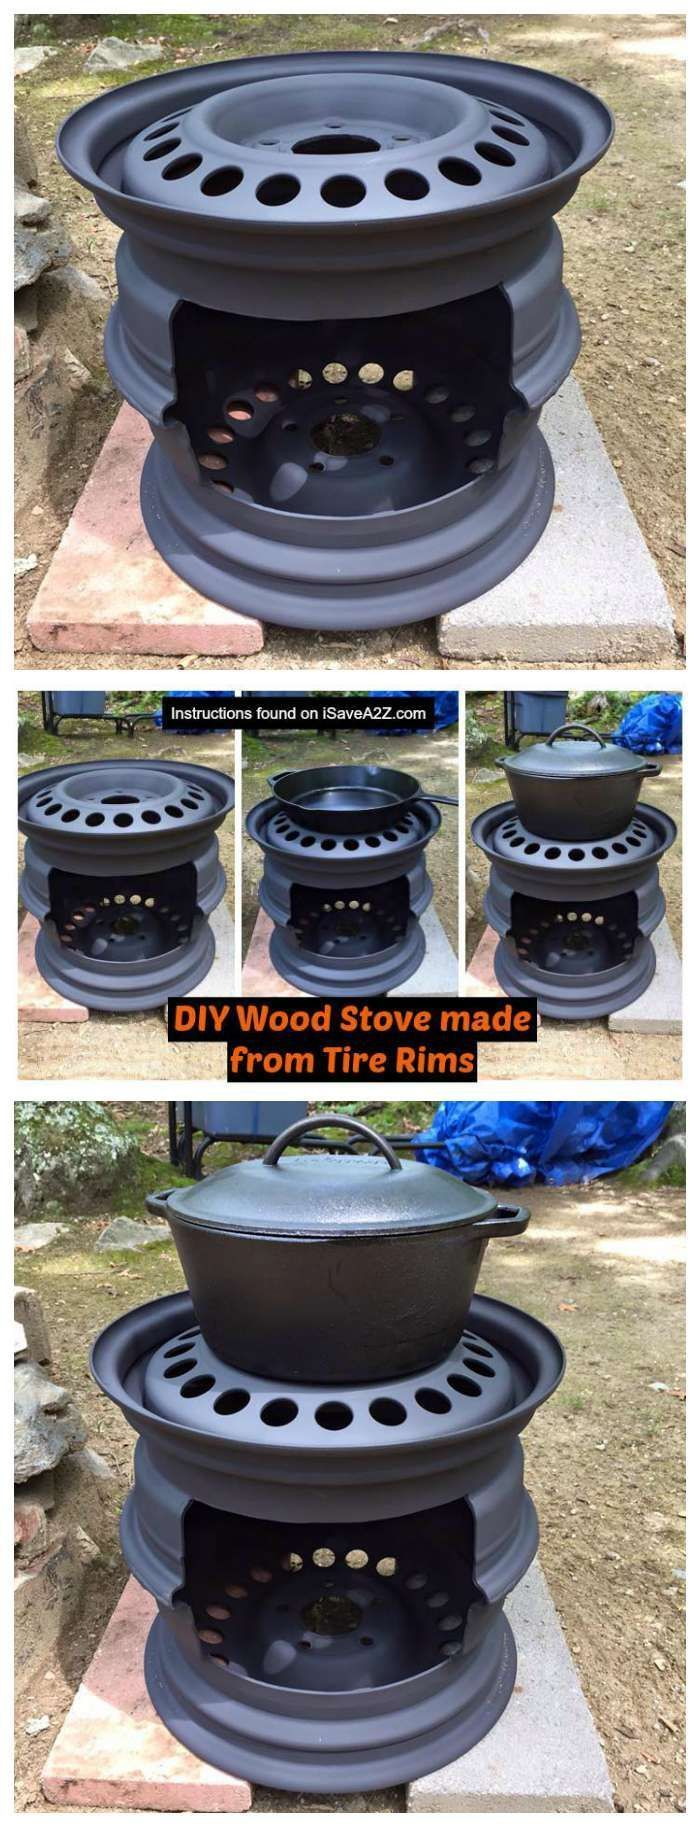 DIY Wood Stove made from Tire Rims - 25+ Best Ideas About Diy Wood Stove On Pinterest Stove